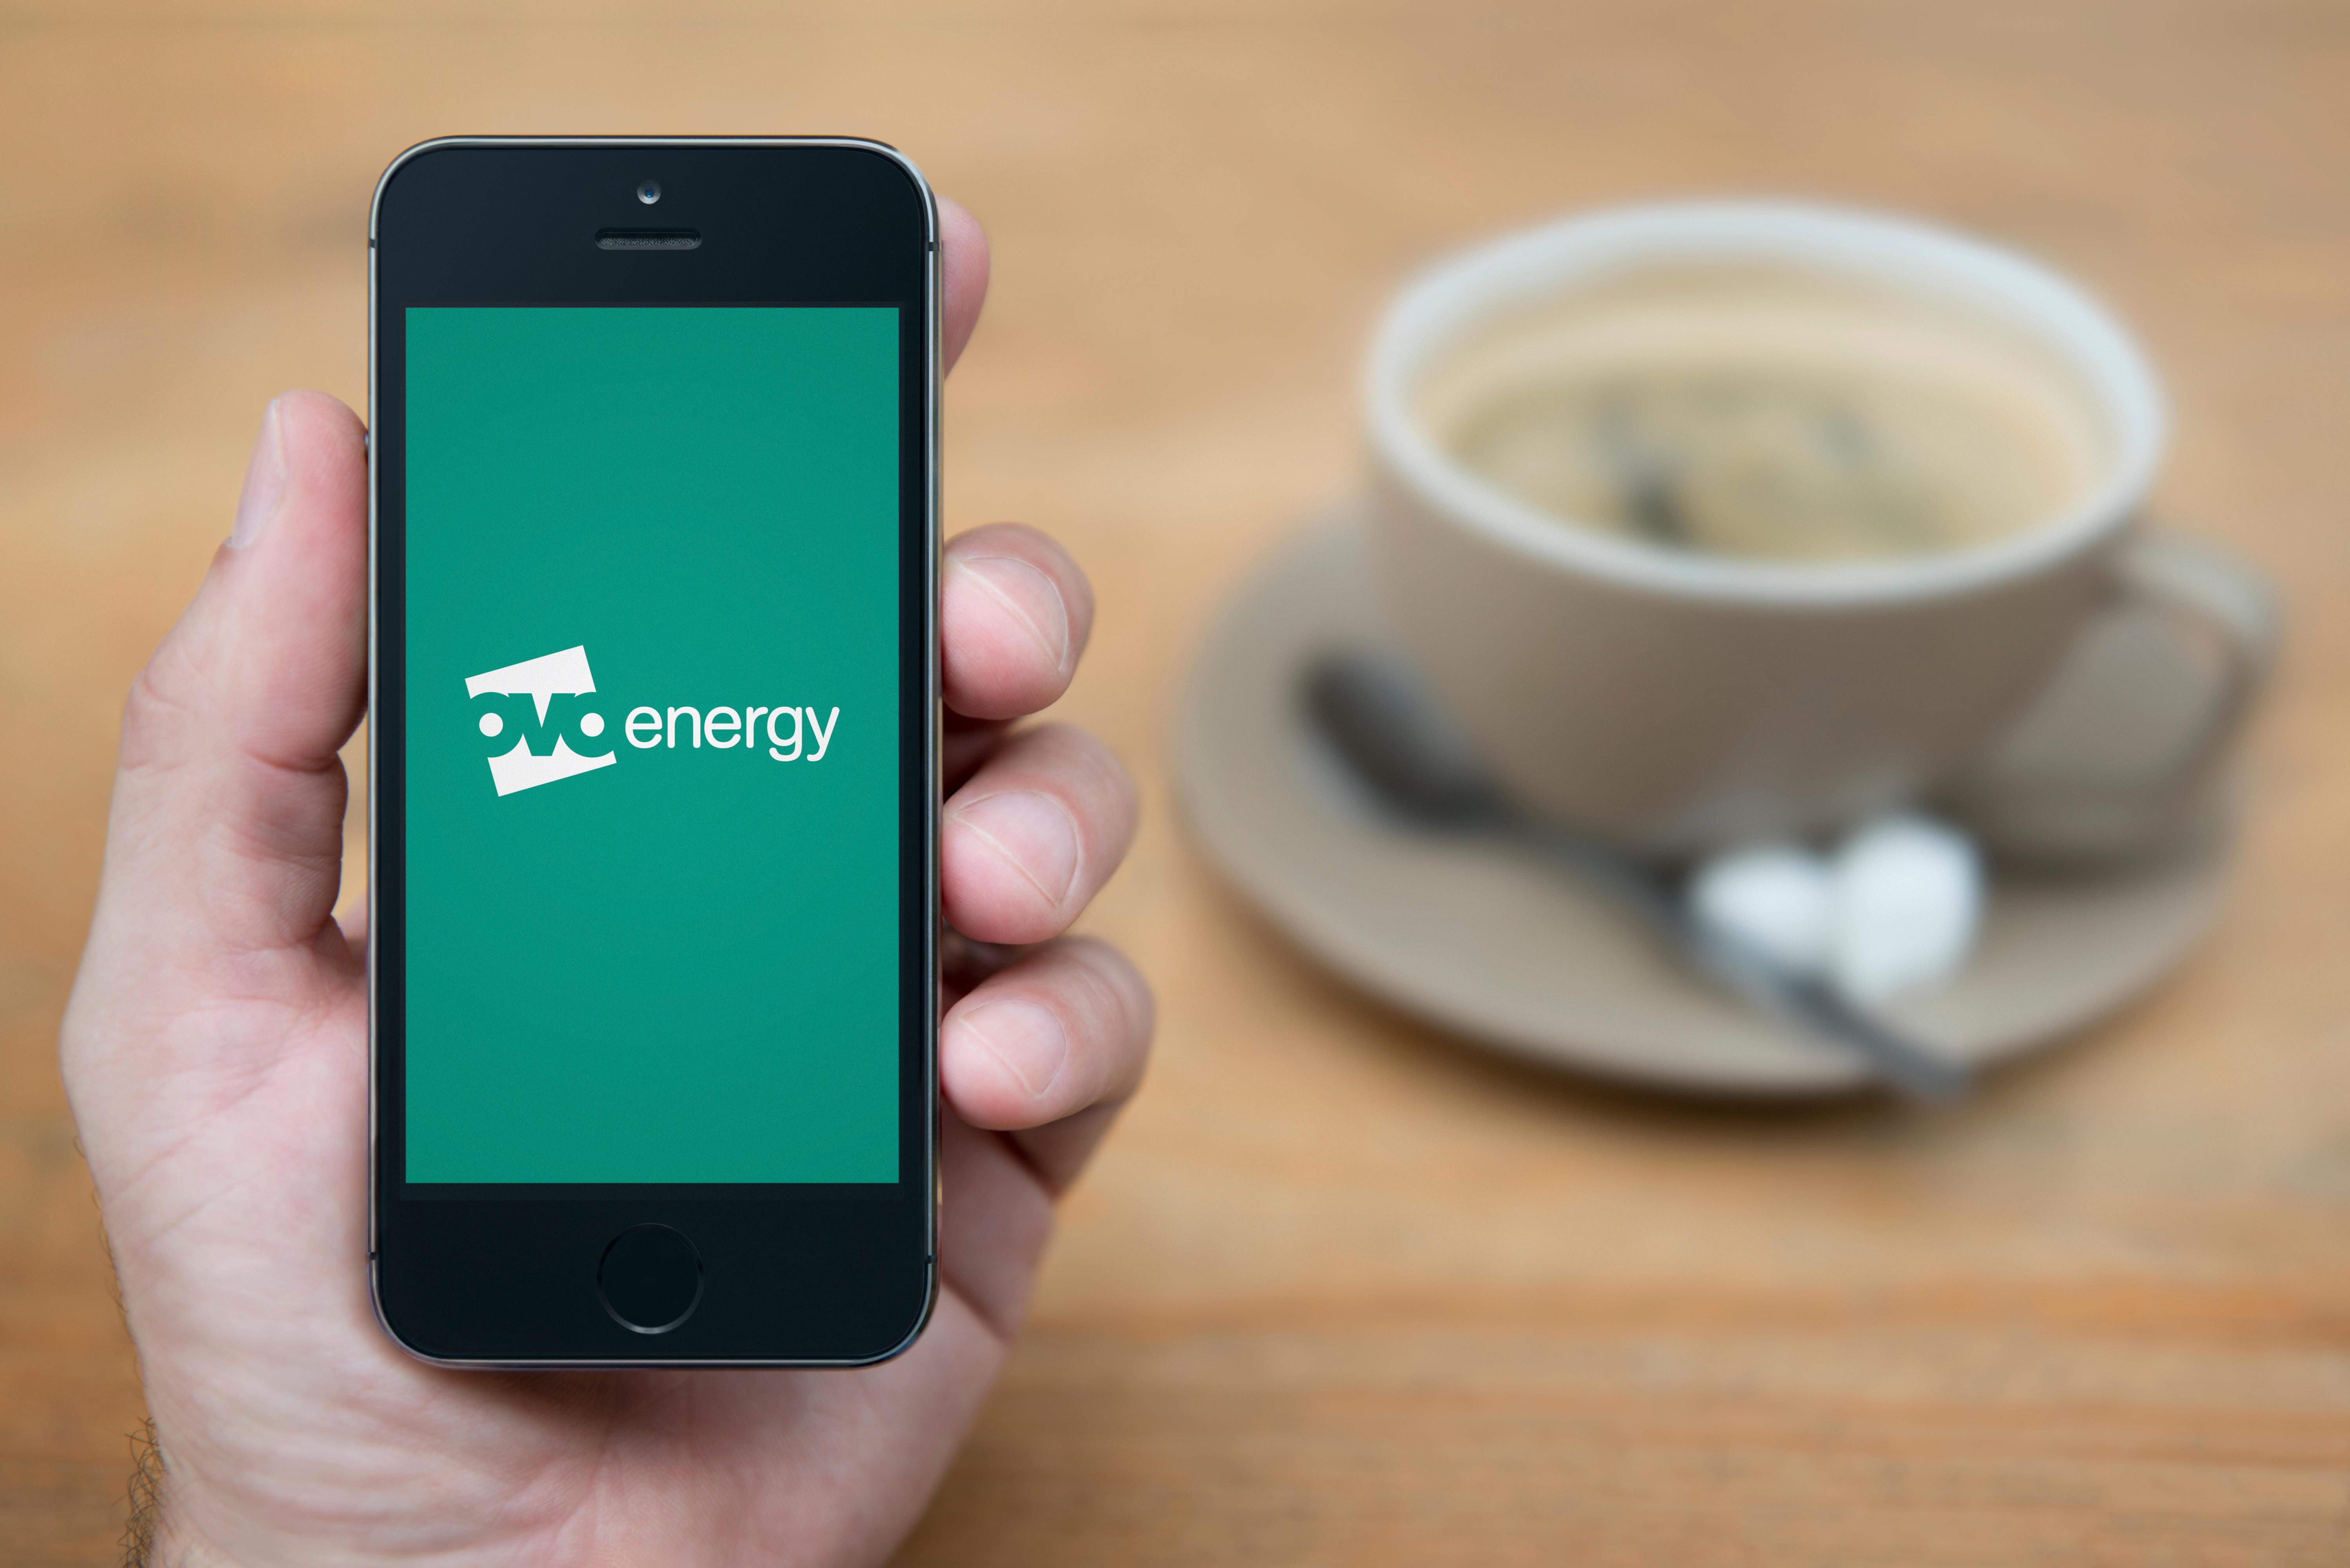 OVO Energy has been ordered to pay £8.9million to Ofgem after it overcharged customers